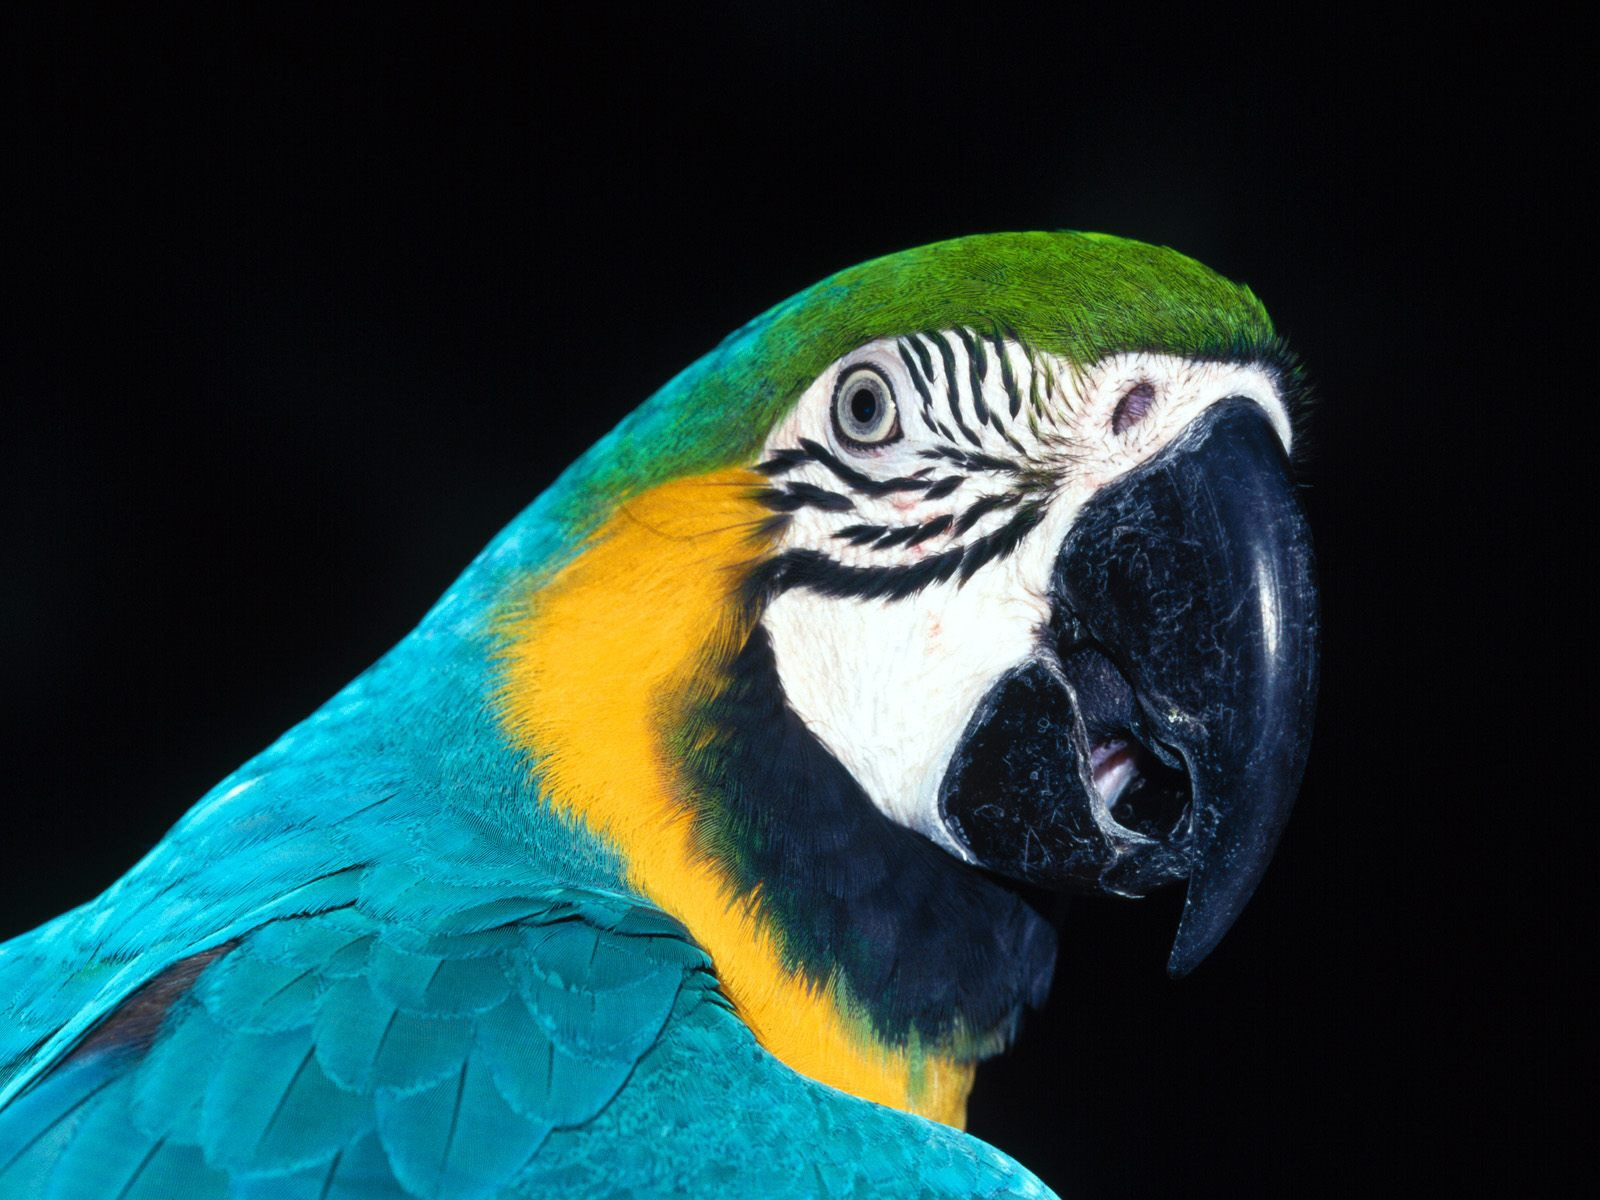 Parrot on a black background